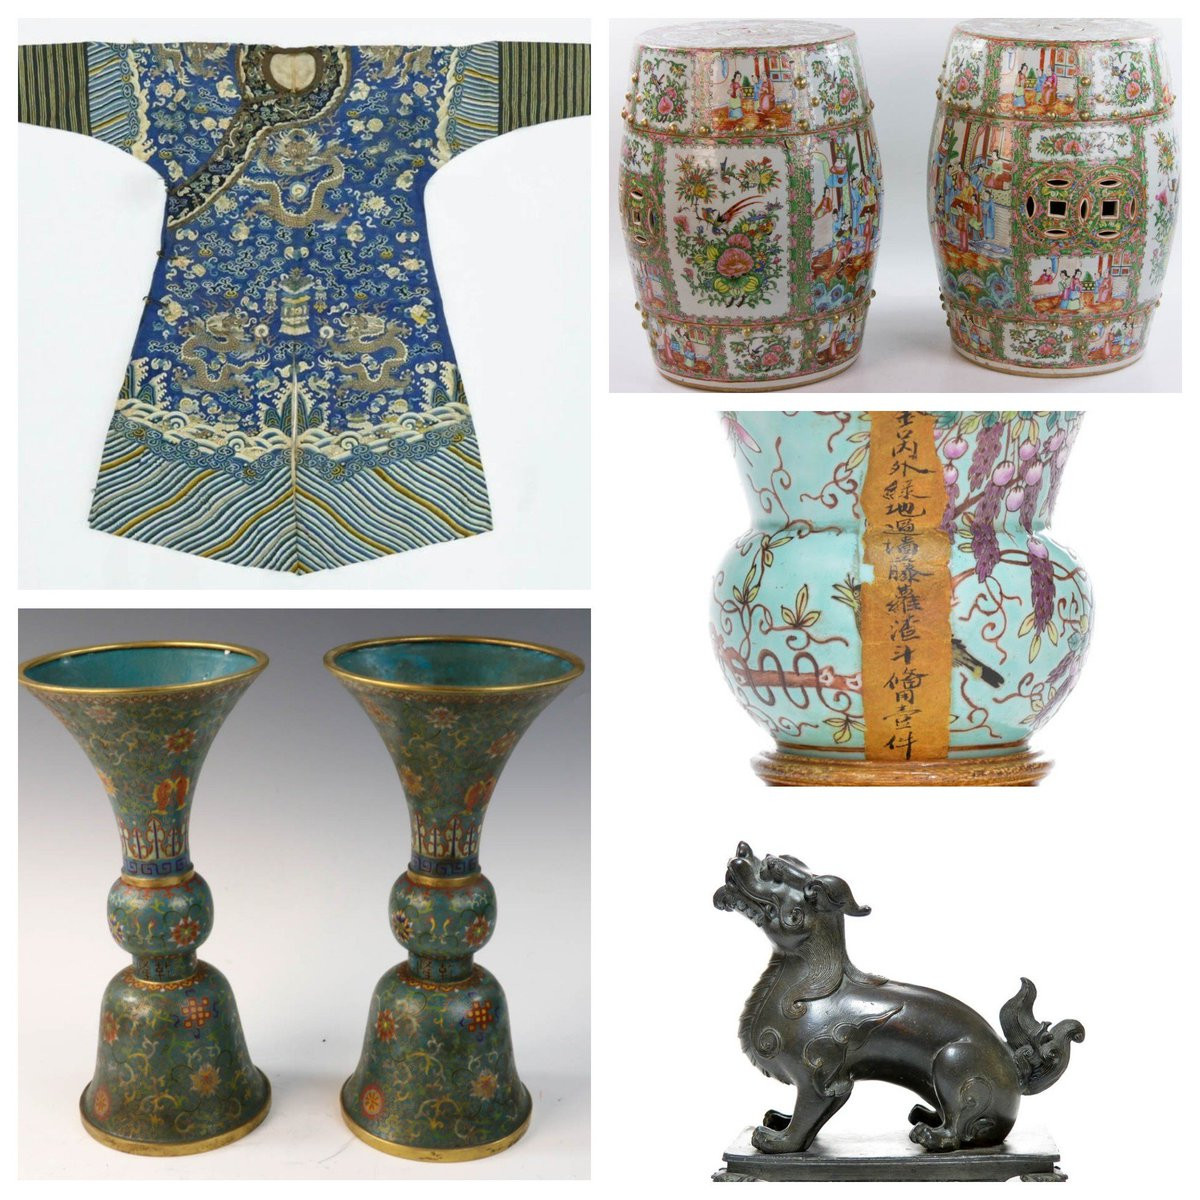 chinese cloisonne vase of porcelains hashtag on twitter inside featuring over 200 lots of exquisite chinese porcelains antiques bronze buddhas cloisonna guanyins silver jewelry ceramics decorativeart